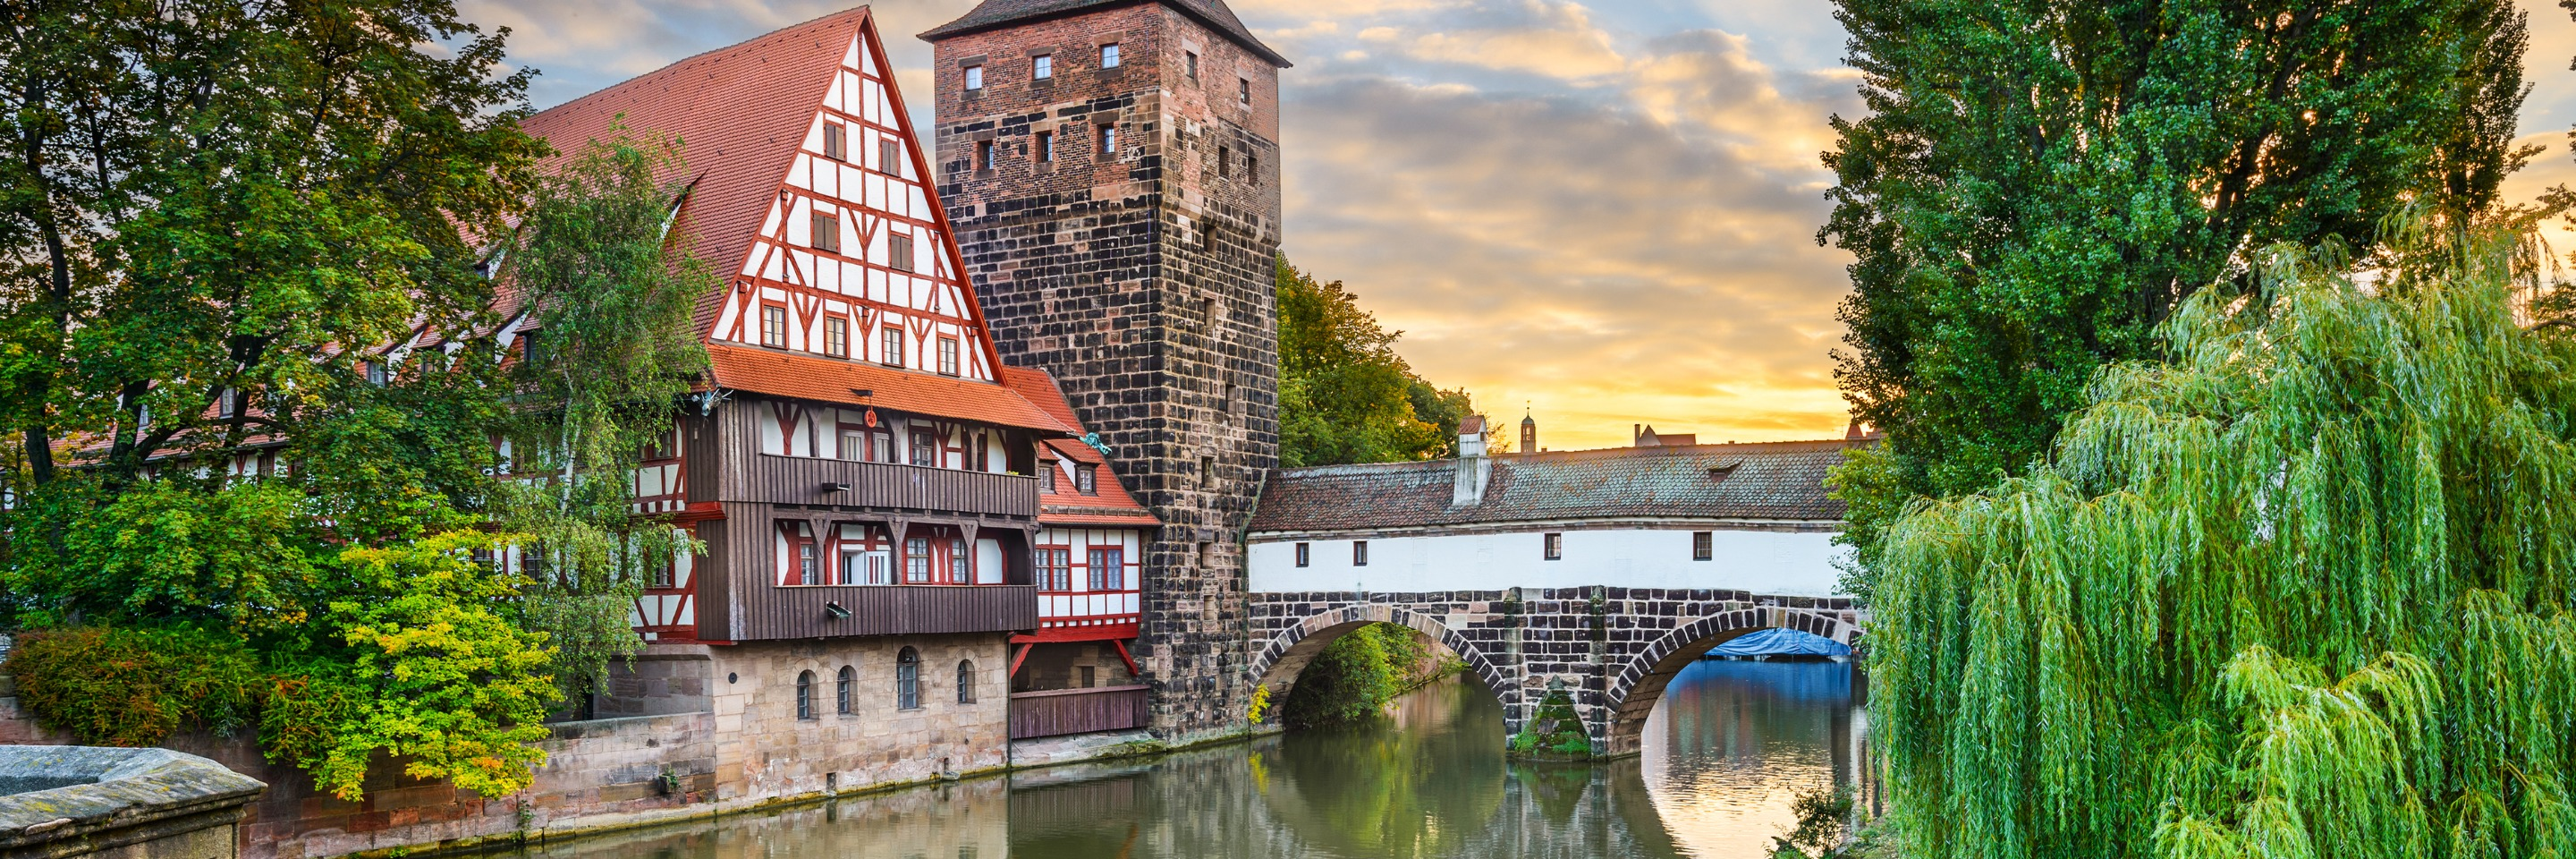 German Grandeur with 2 Nights in Munich & 2 Nights in Lucerne for Beer Enthusiasts (Westbound)